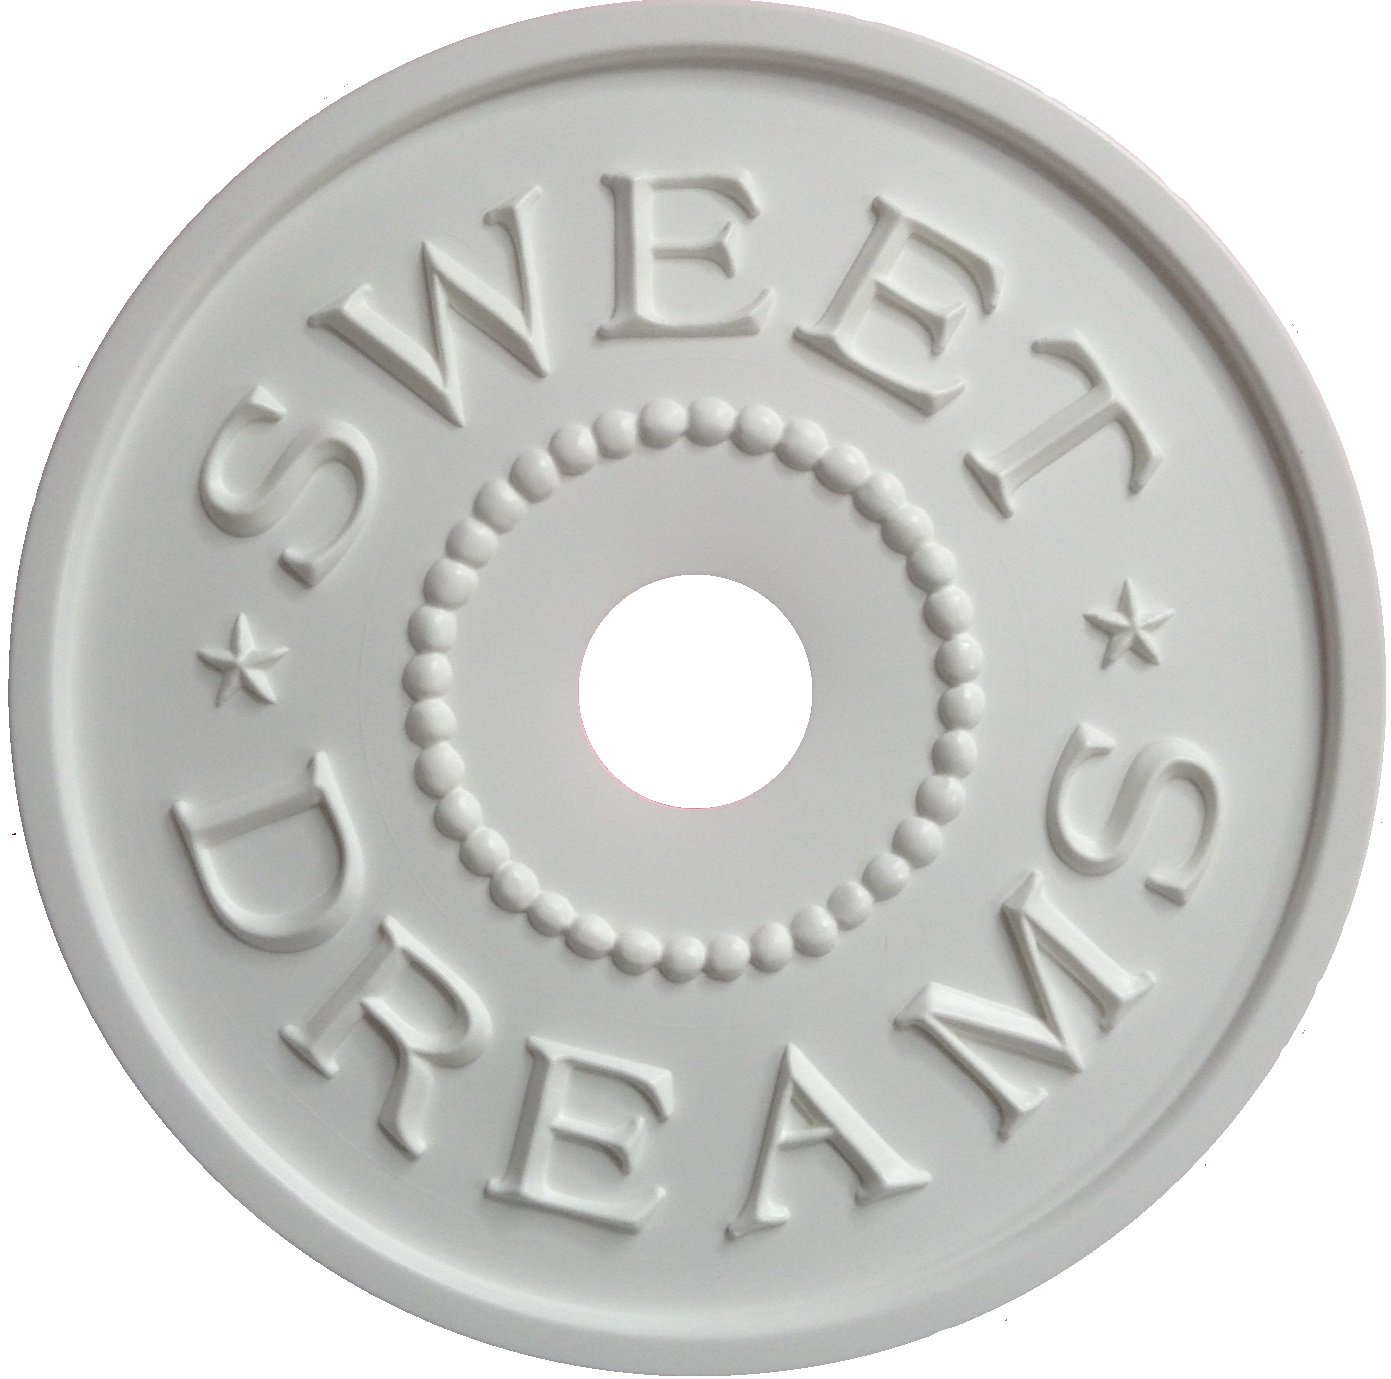 Marie Ricci Nursery Decor, Sweet Dreams Ceiling Medallion, Prime and Paint Yourself is cast in polypropylene, NO PVC. Made in USA